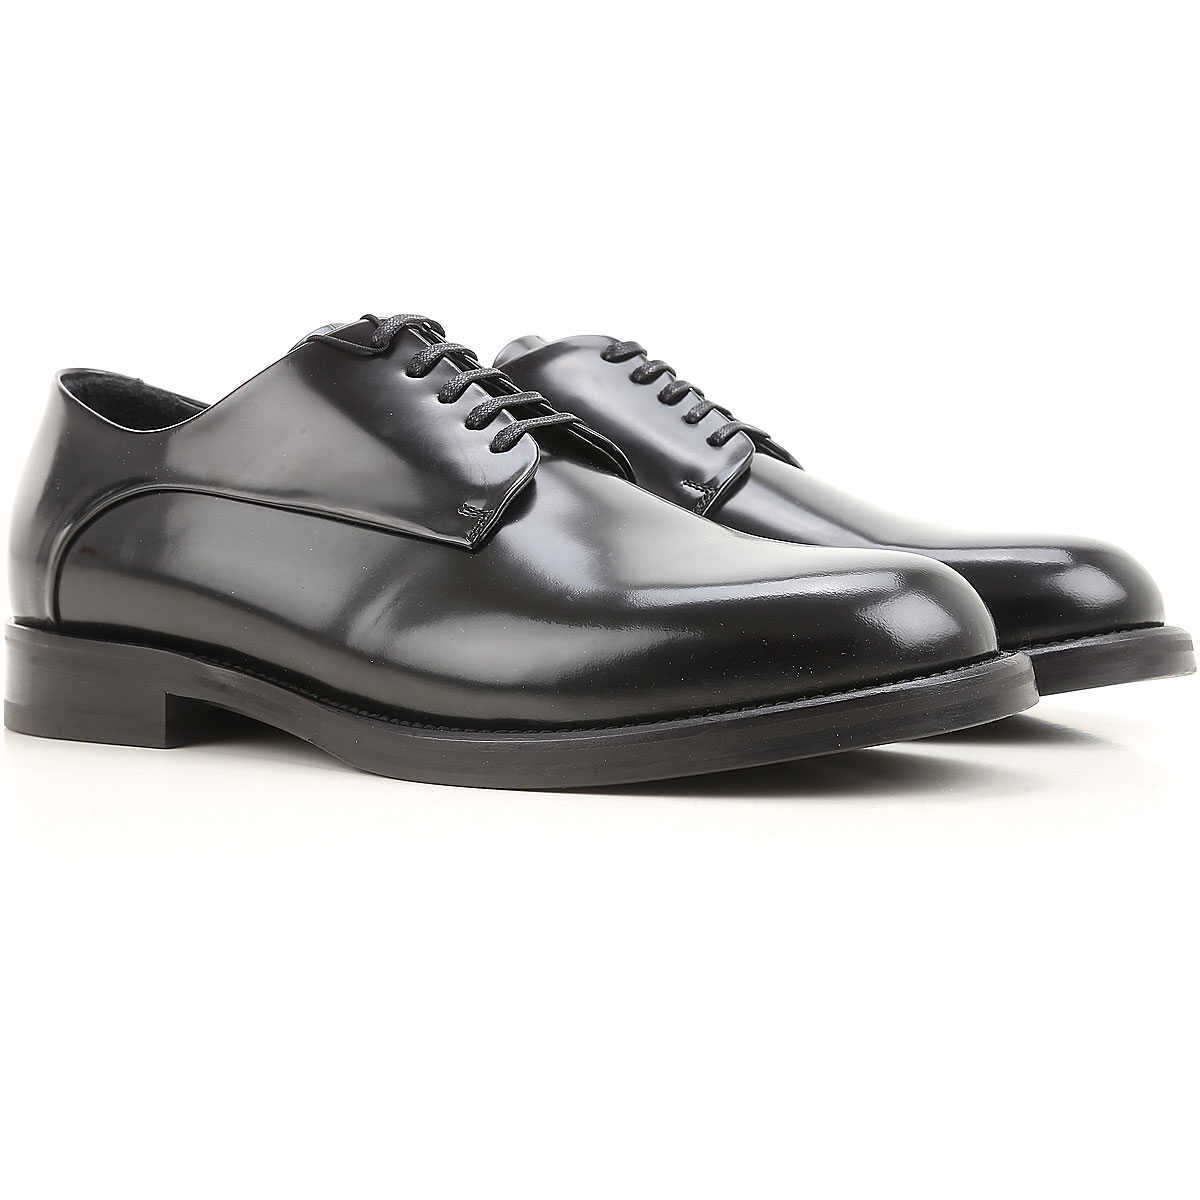 Emporio Armani Lace Up Shoes for Men Oxfords Derbies and Brogues On Sale in Outlet DK - GOOFASH - Mens FORMAL SHOES